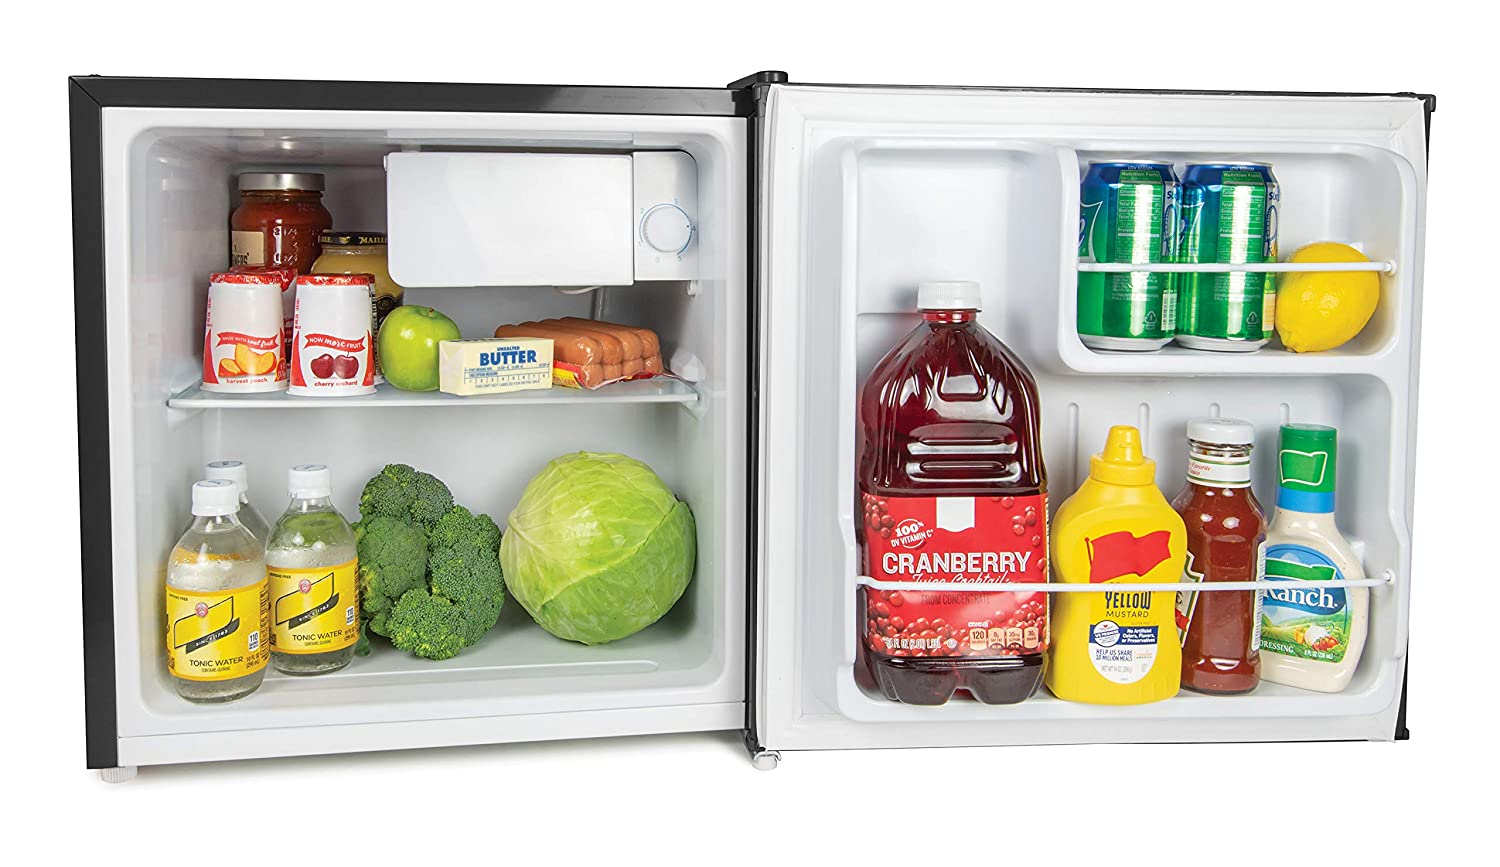 1.6 Cu.Ft Red Dorms Slide out Glass Shelf Offices Igloo IRF16RSRD Classic Single Door Chrome Handle /& Bottle Opener Compact Refrigerator with Freezer Perfect for Homes